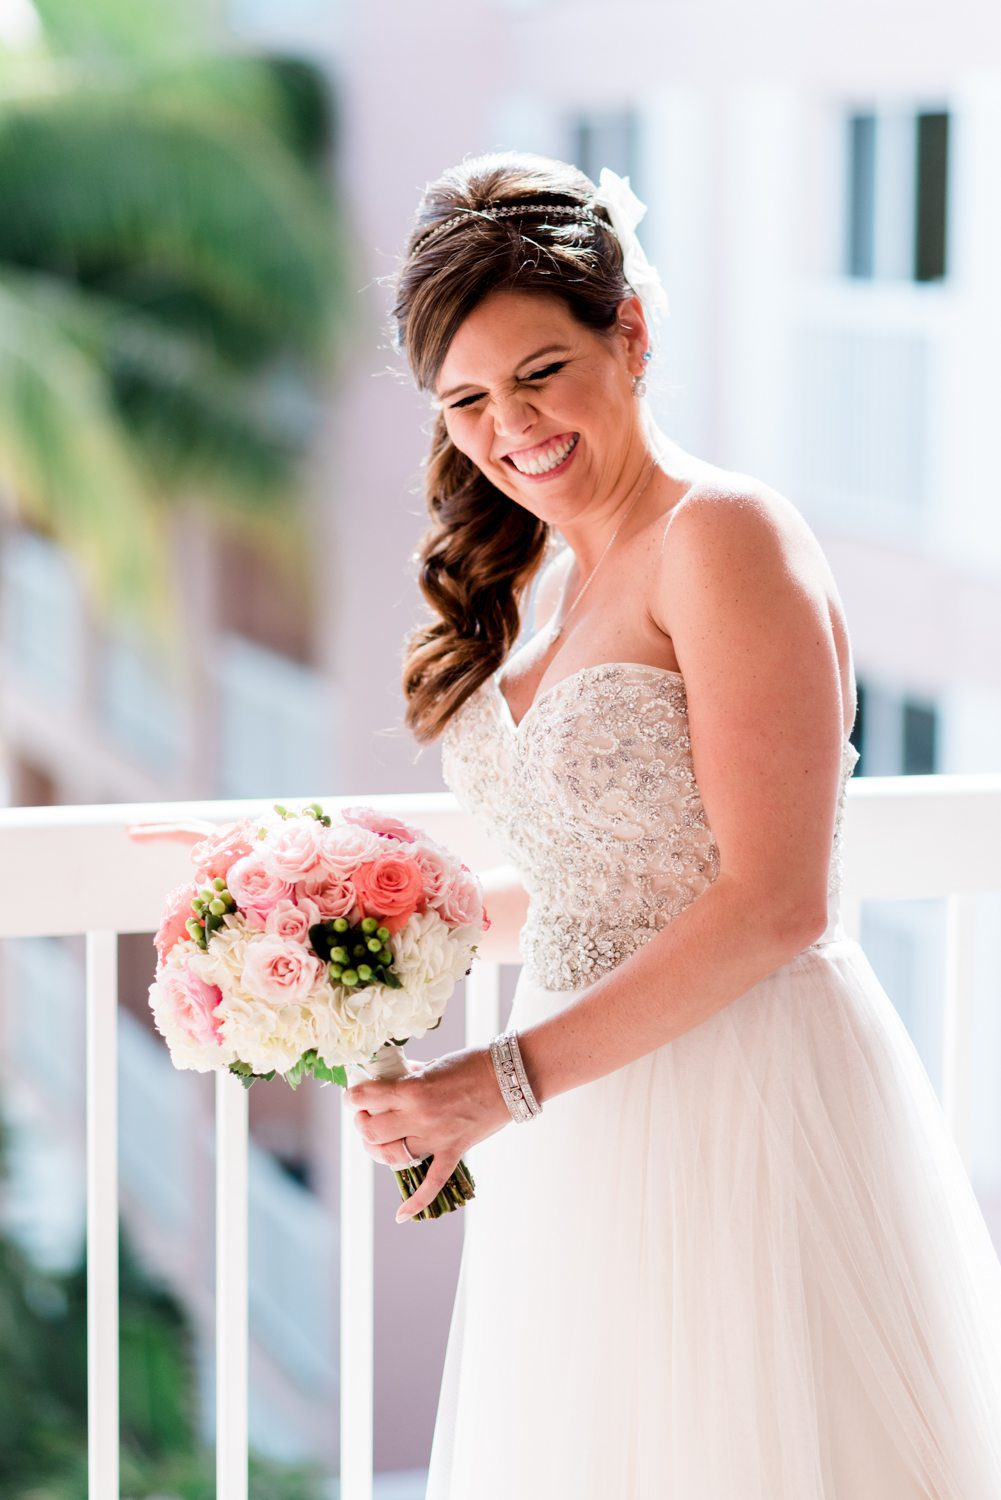 Erin Colin Fort Zachary Taylor Rooftop Cafe Key West Wedding Photographer 9 - Erin & Colin   Key West Wedding Photographer   Fort Zachary Taylor